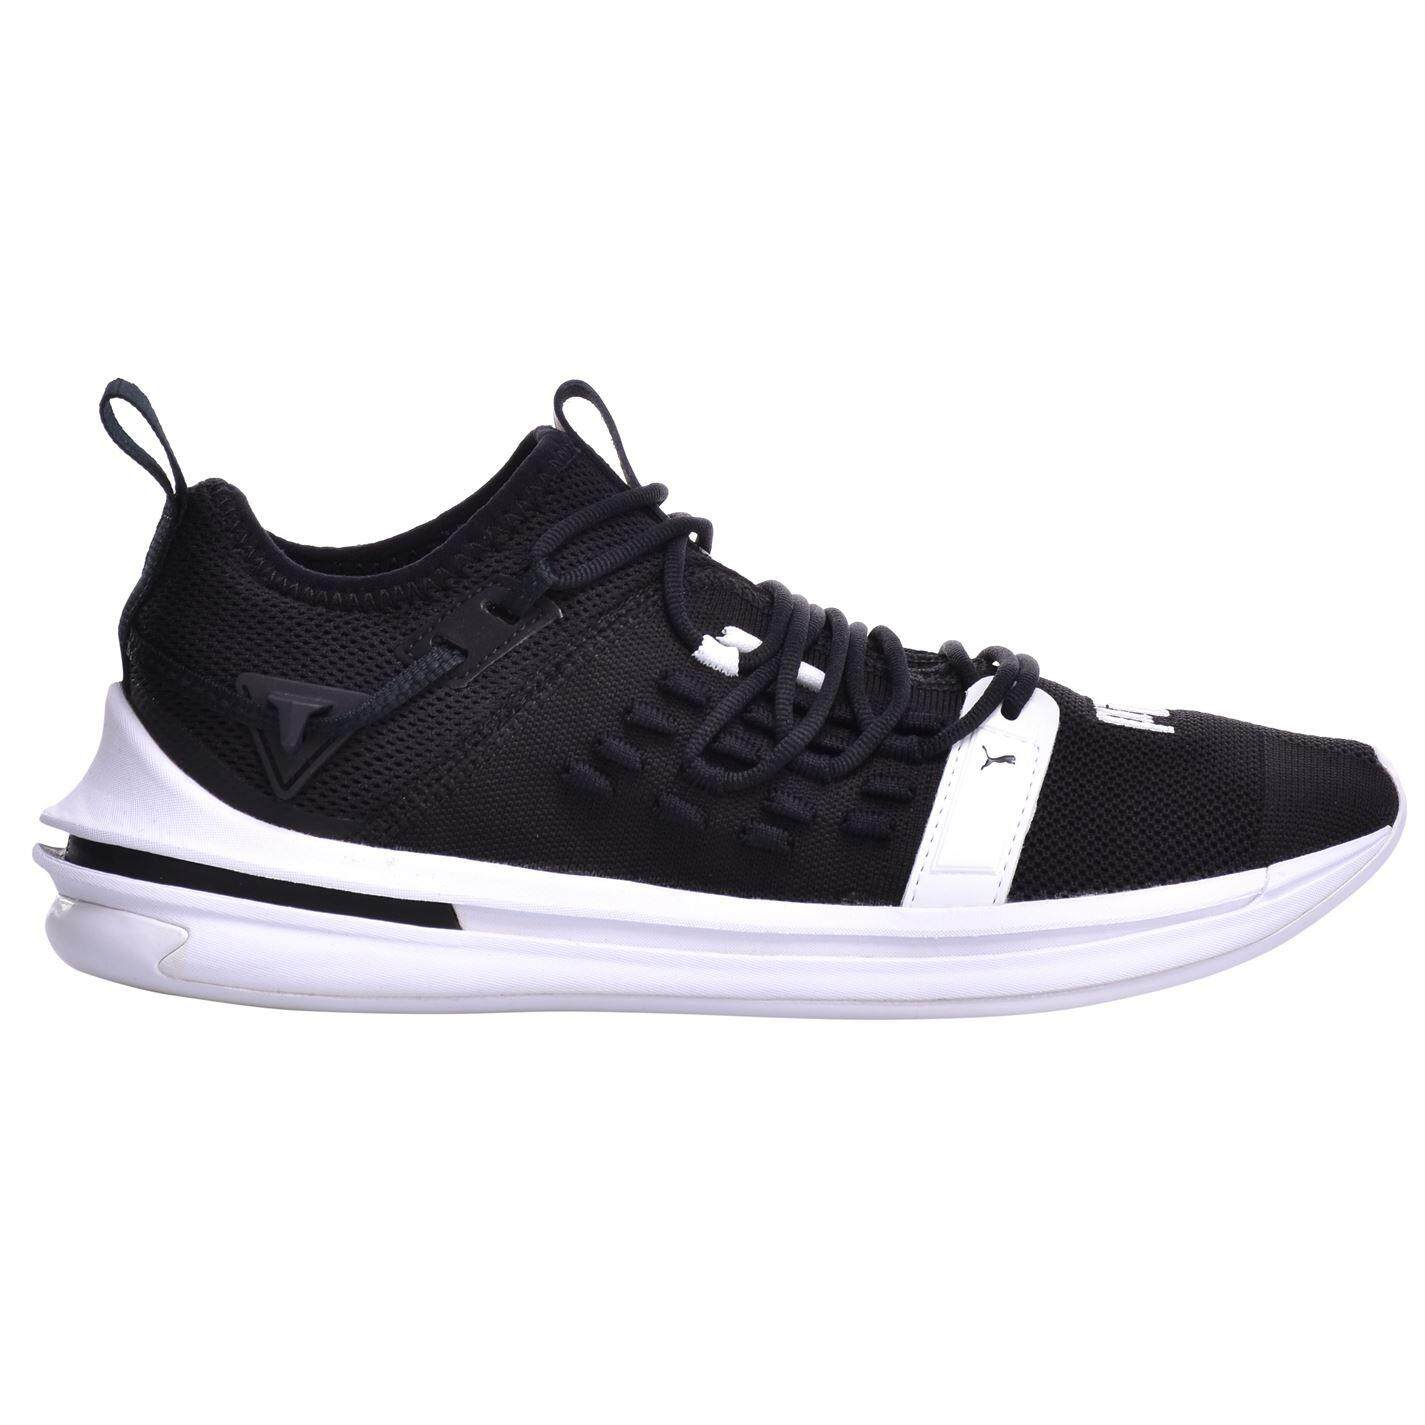 sports shoes 4315f ea130 Puma Men's Sports Shoes - Running Shoes price in Malaysia - Best ...